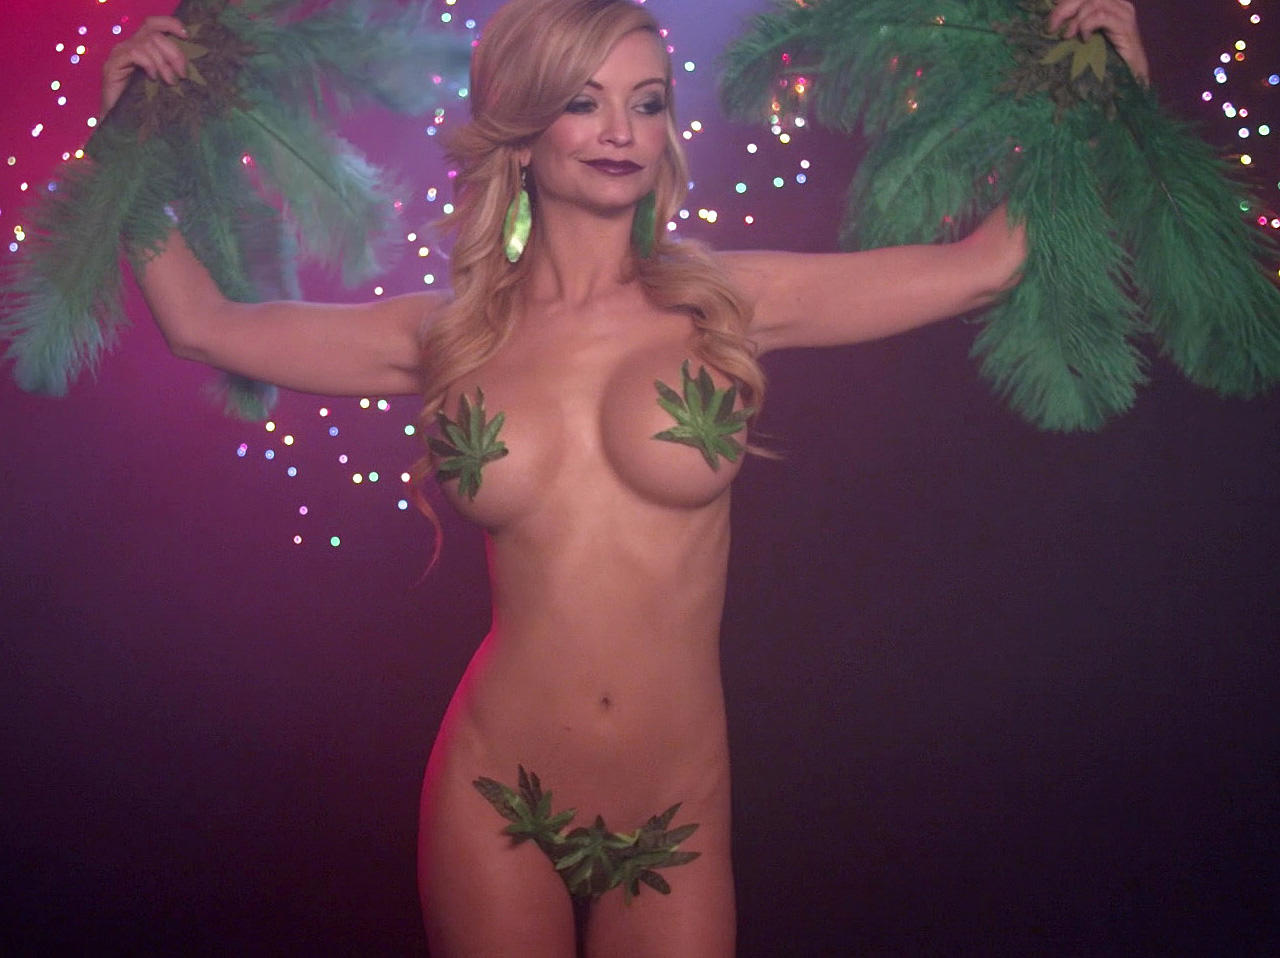 Η ηθοποιός Mindy Robinson topless